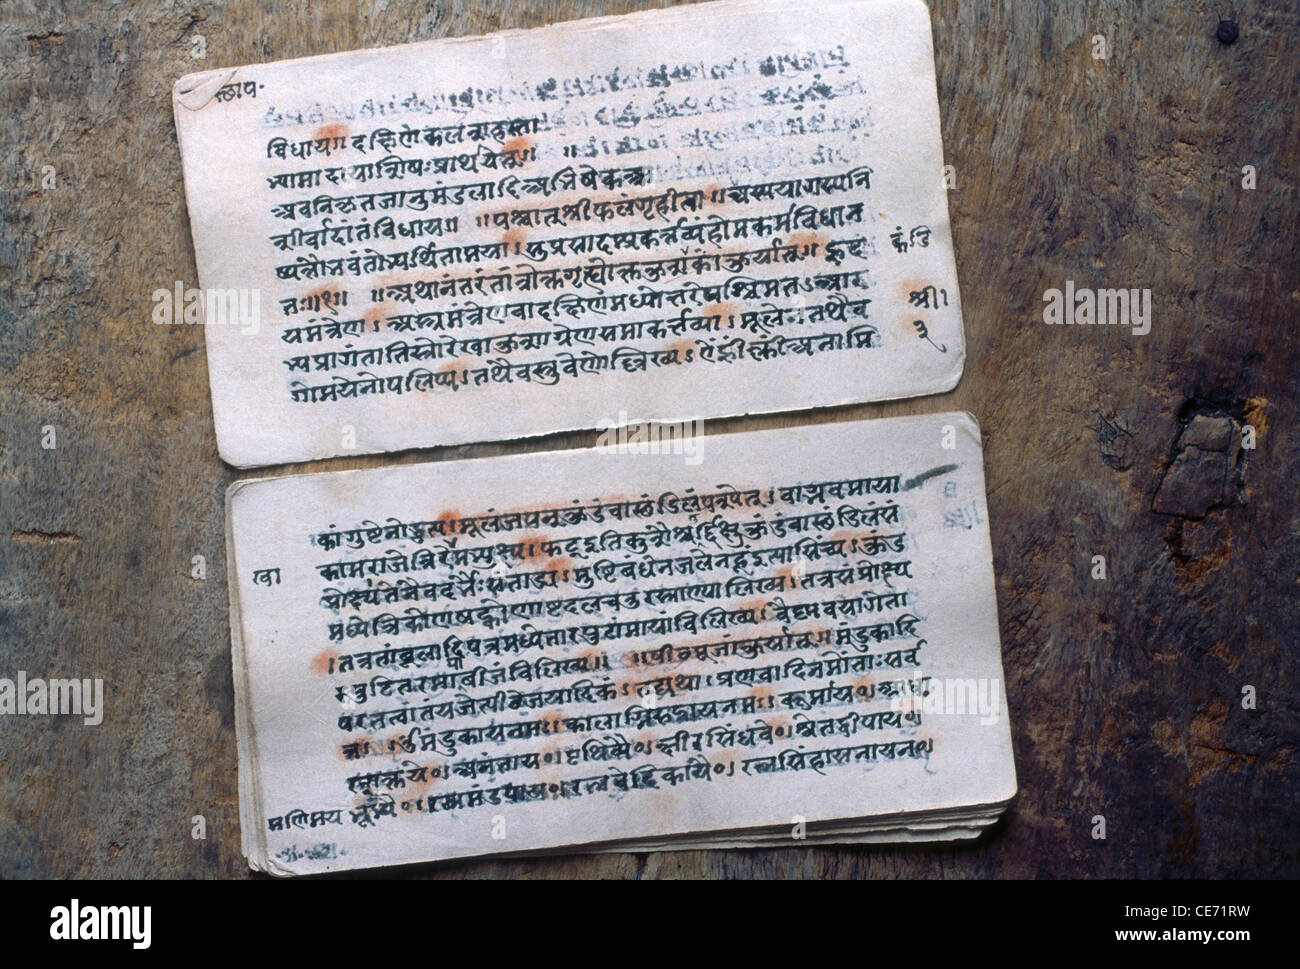 AAD 81785 : Indian Old Scripture Sanskrit text india - Stock Image